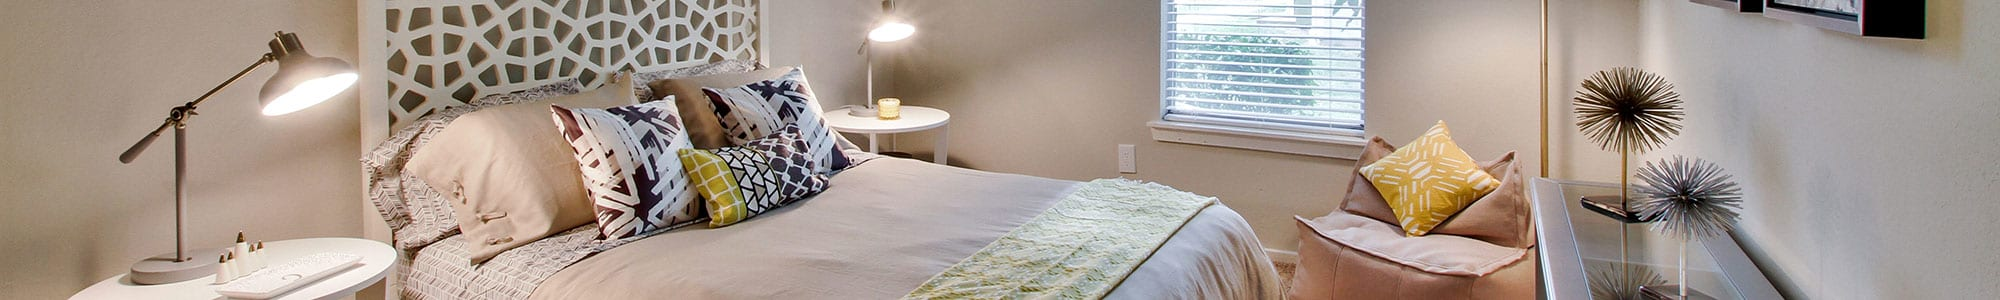 View our amenities page to learn more about Sundance Apartments